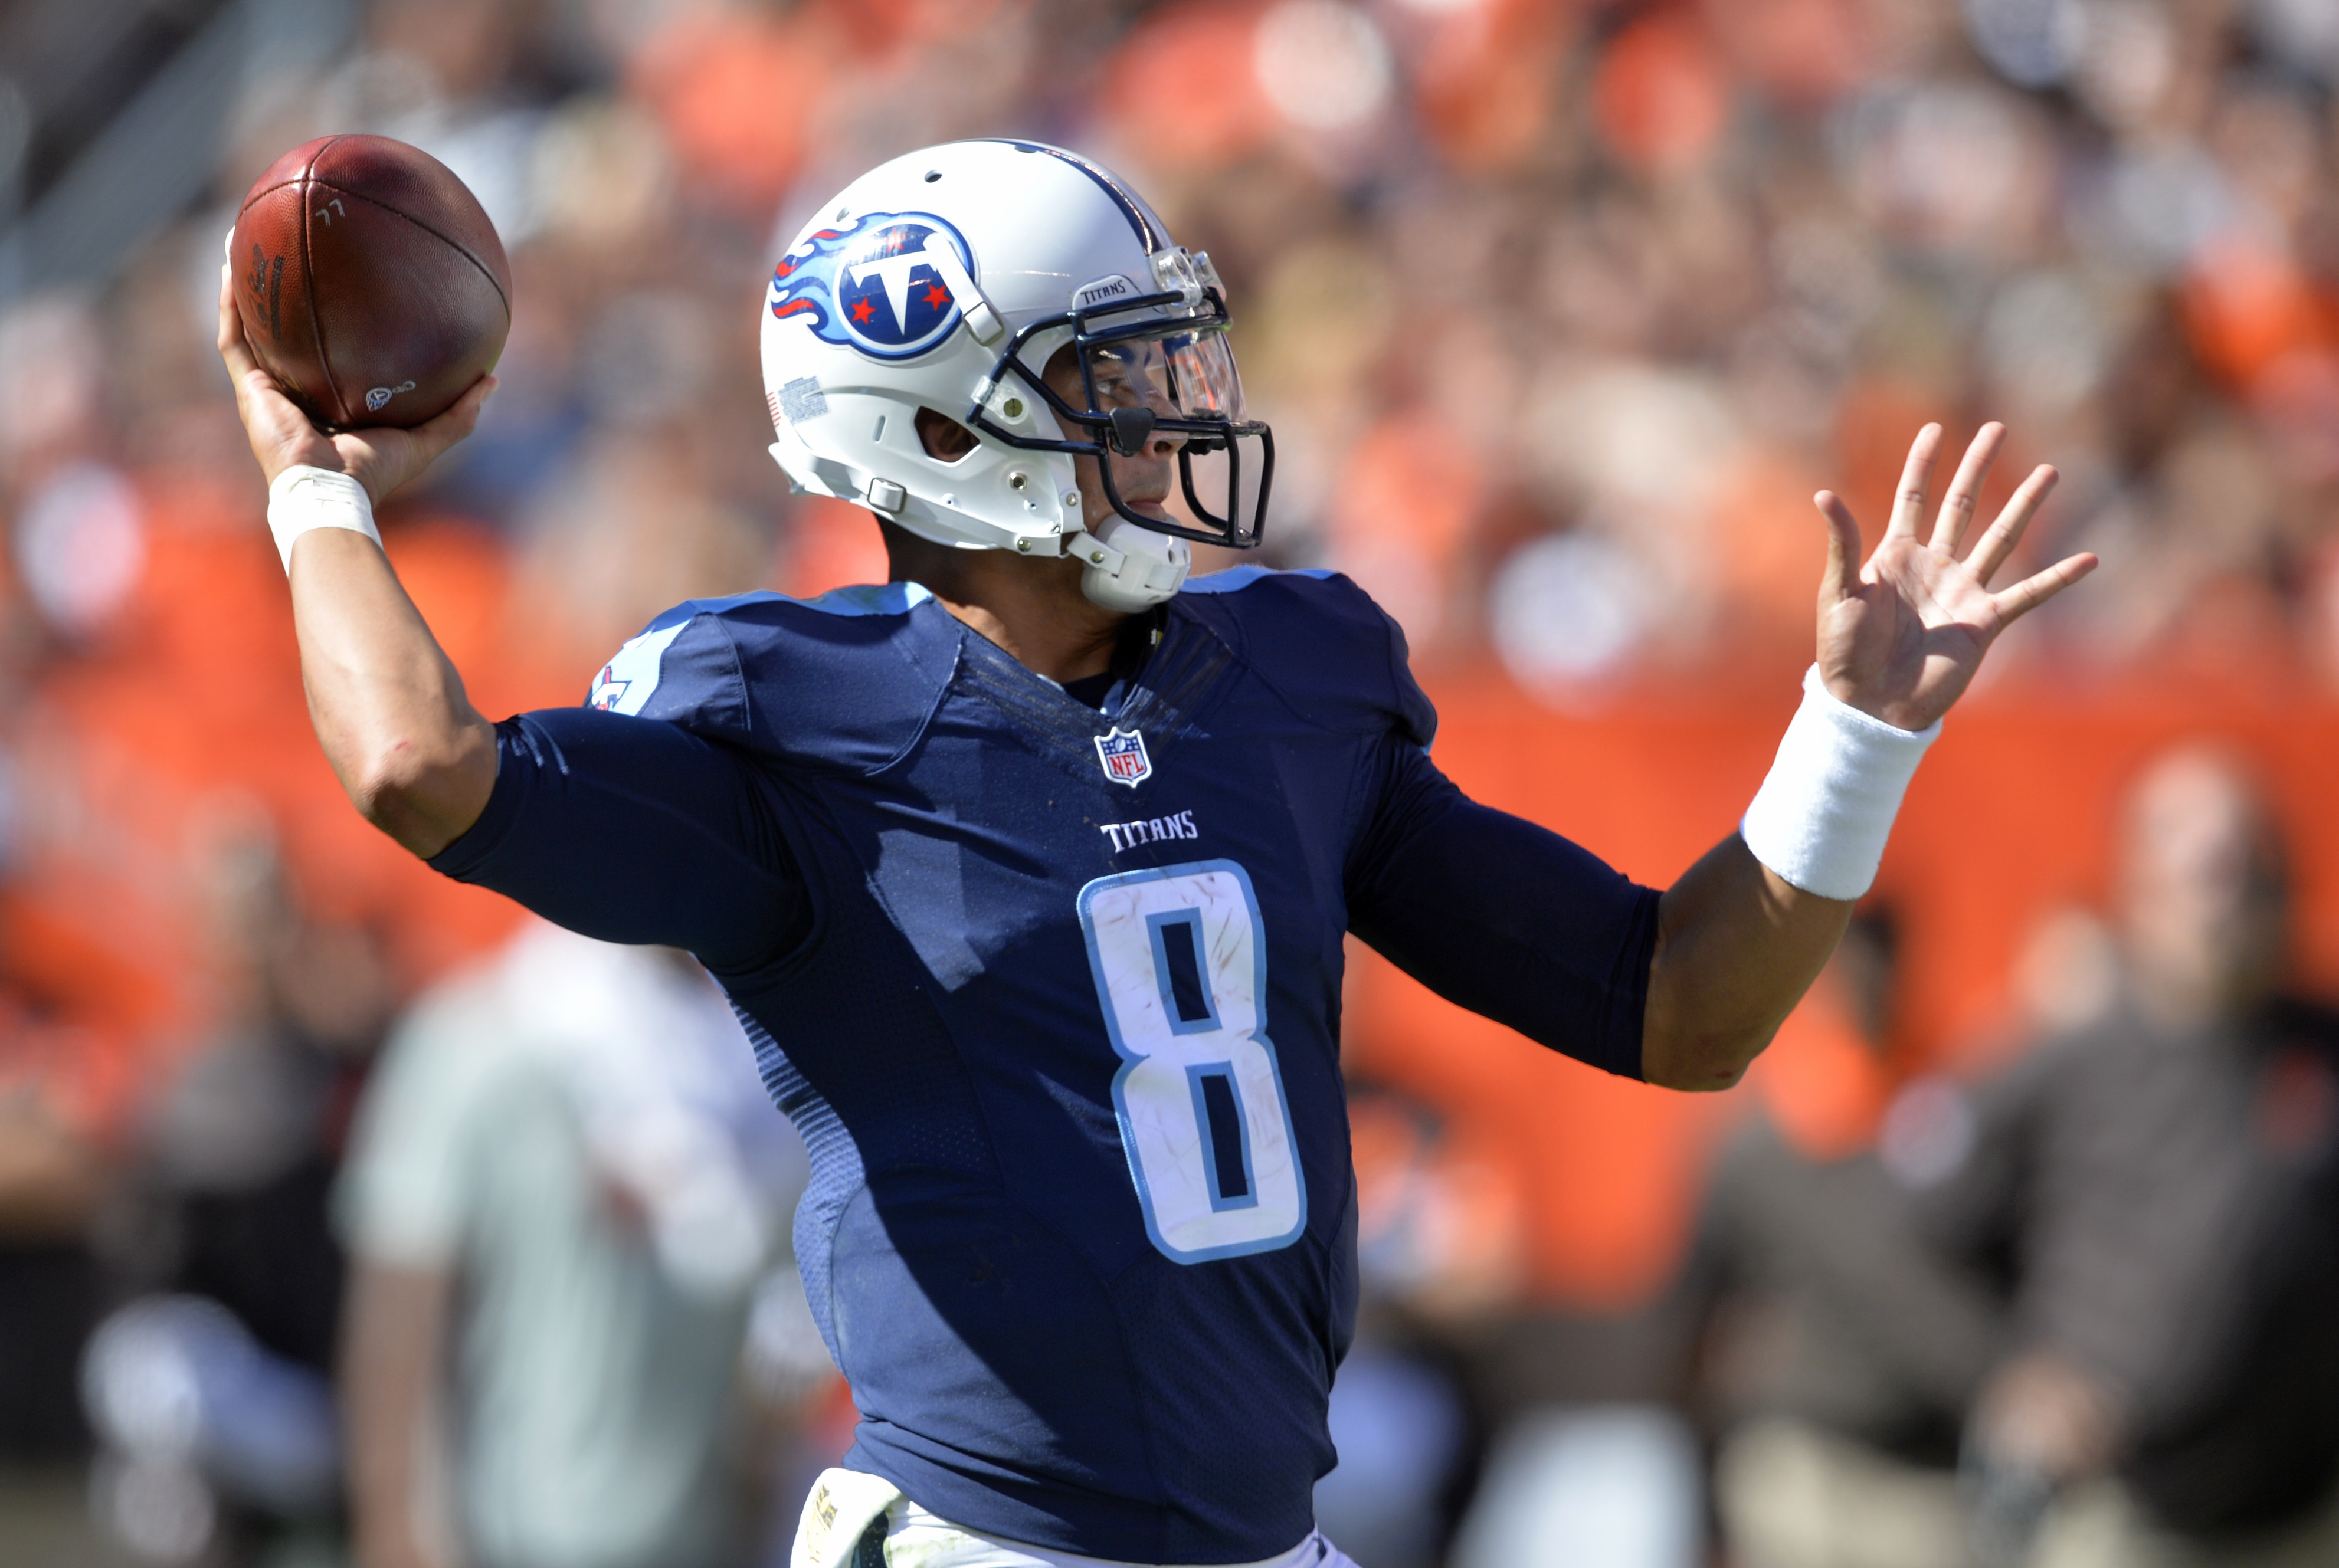 FILE - In this Sept. 20, 2015, file photo, Tennessee Titans quarterback Marcus Mariota (8) throws a 19-yard touchdown pass to tight end Anthony Fasano during the second half of an NFL football game, in Cleveland. Mariota has 13 touchdown passes in only si